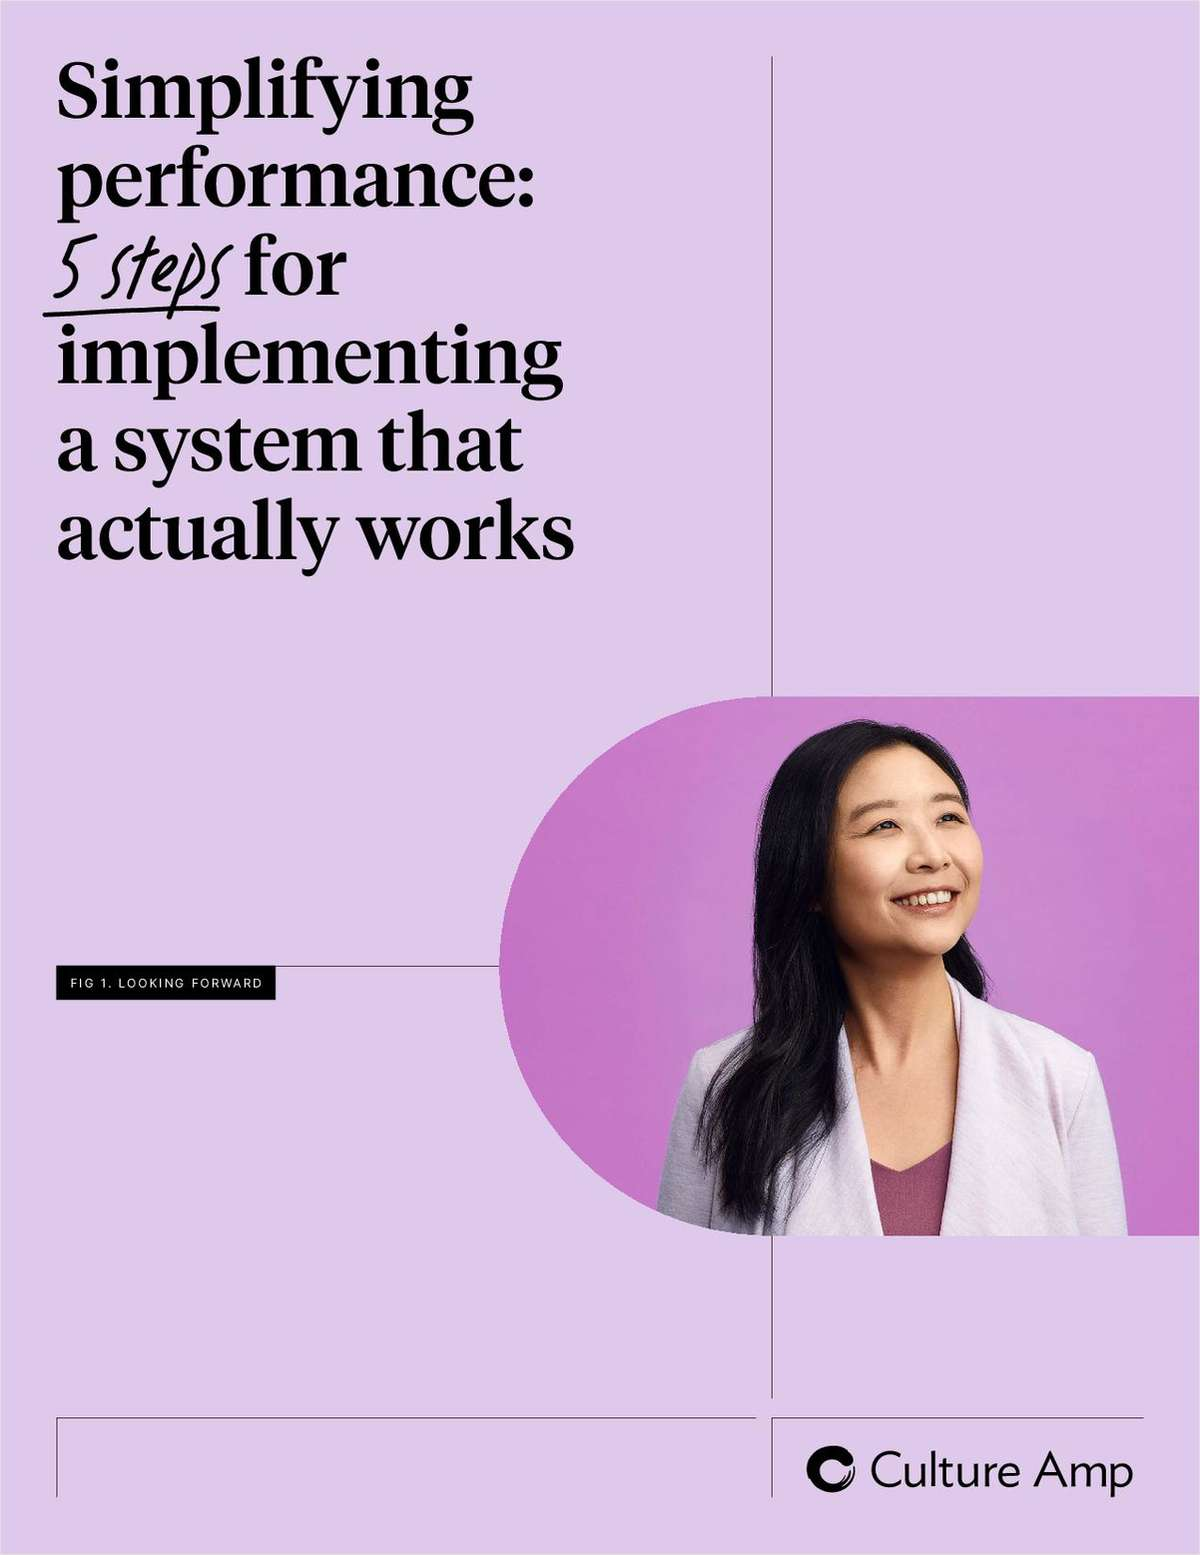 Simplifying performance: 5 steps for implementing a system that actually works